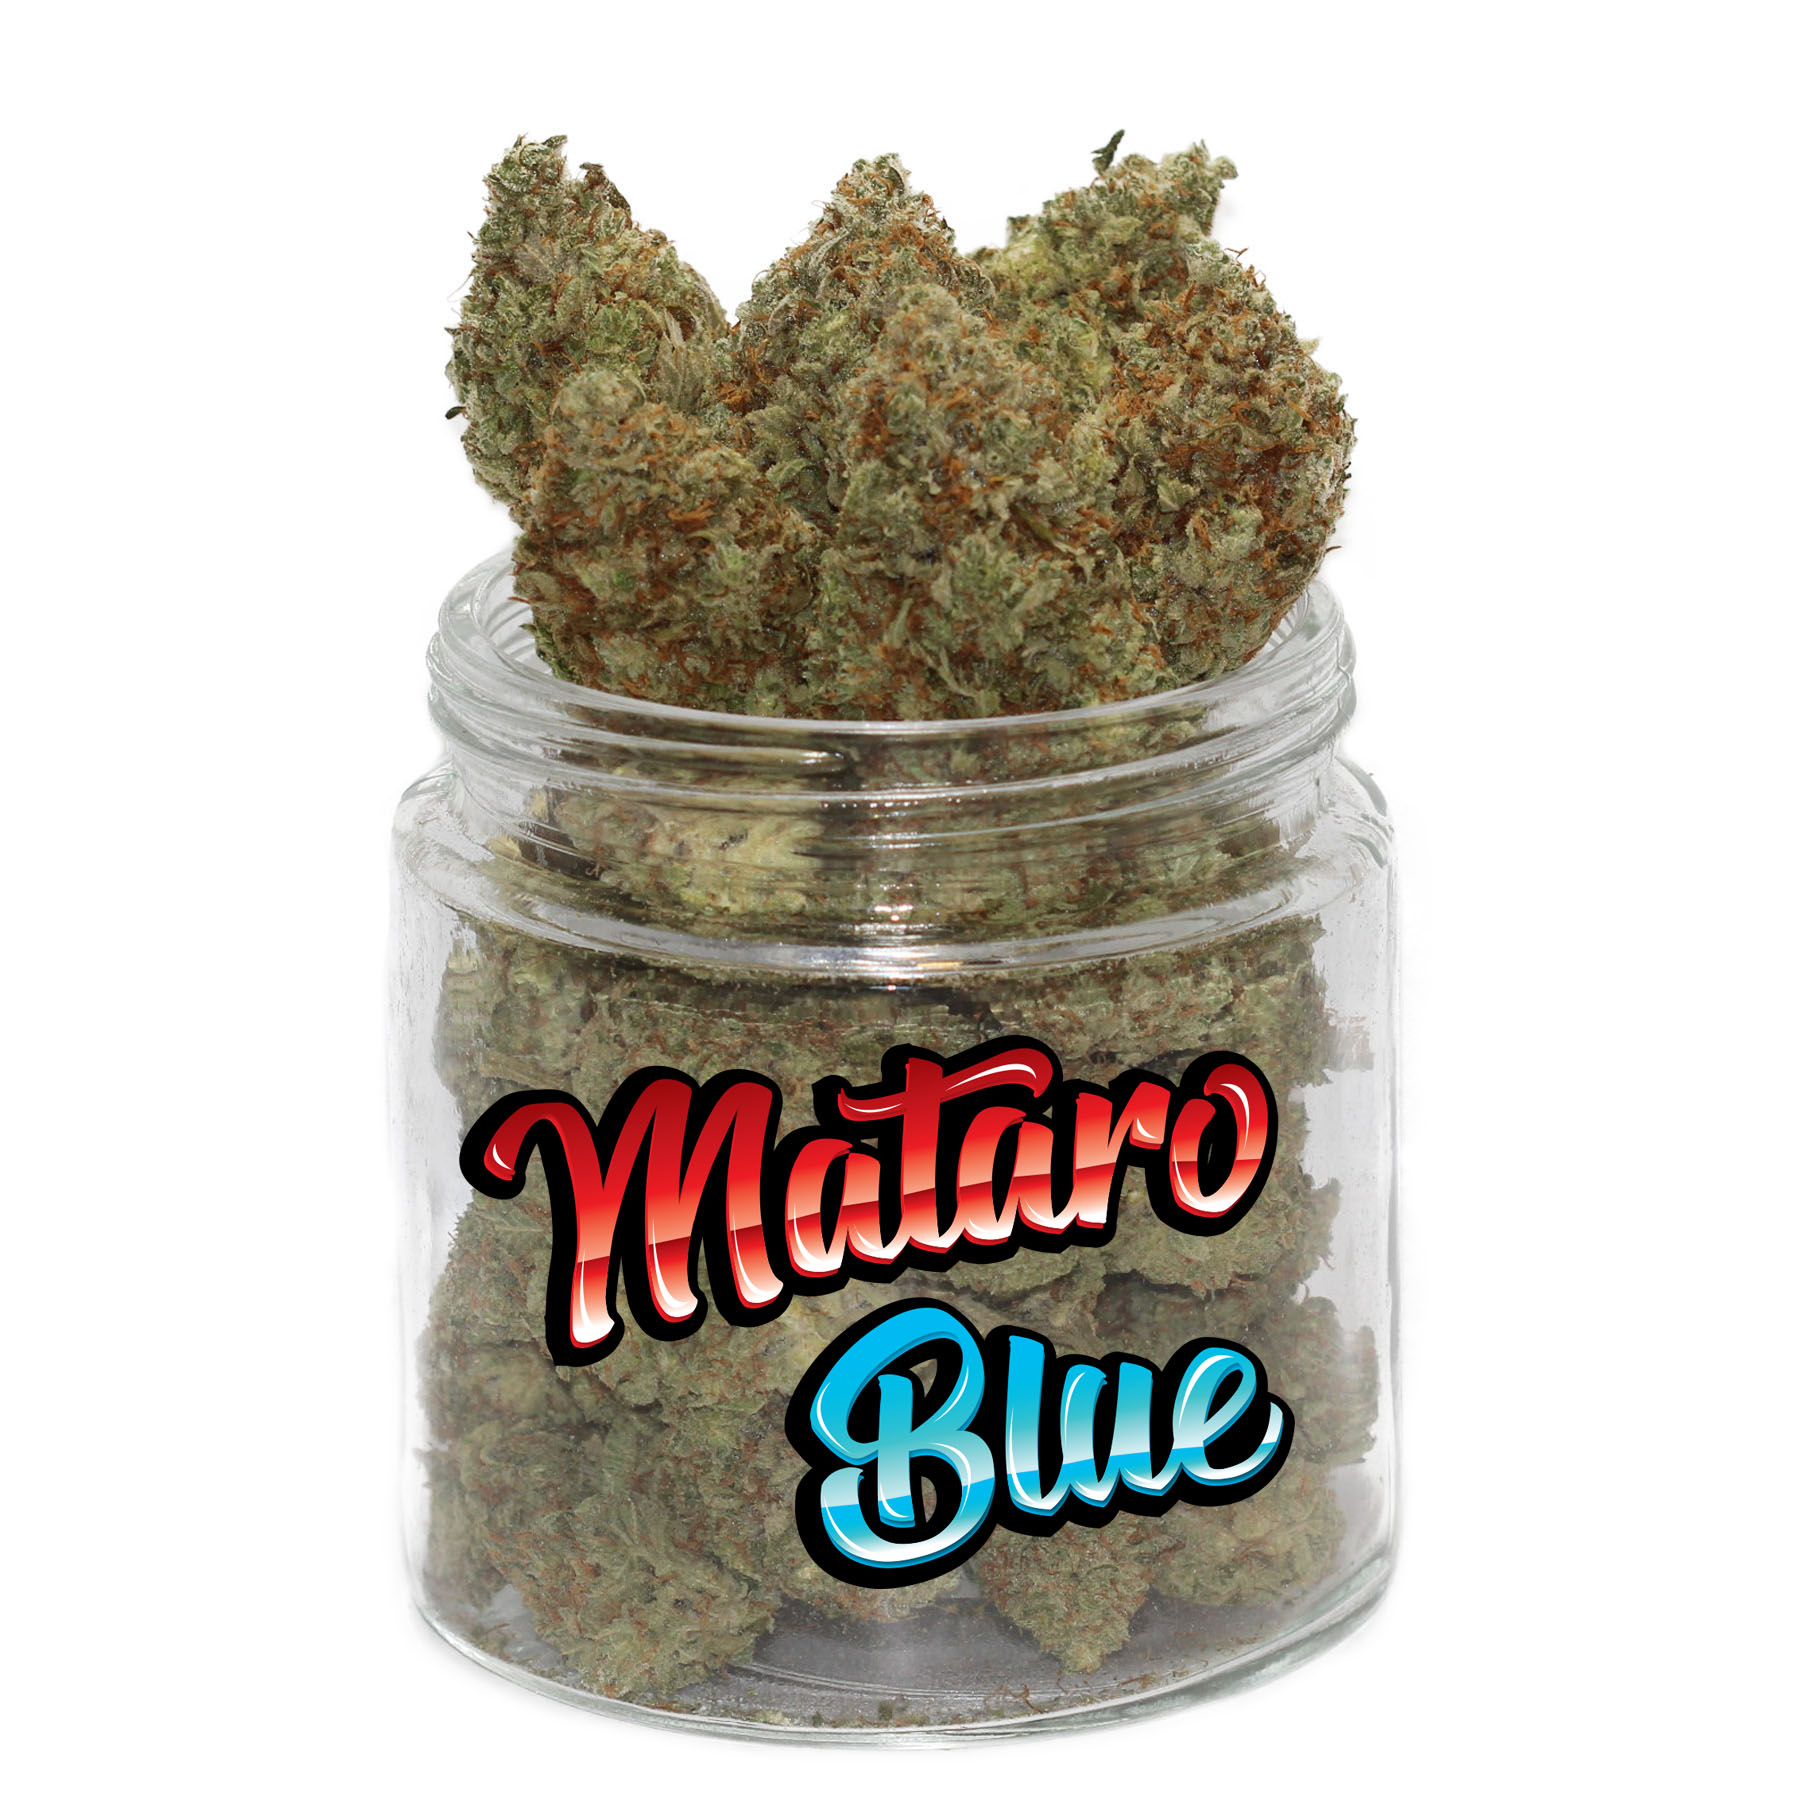 Mataro Blue (AAAA) by Get Kush - Image © 2020 Get Kush. All Rights Reserved.